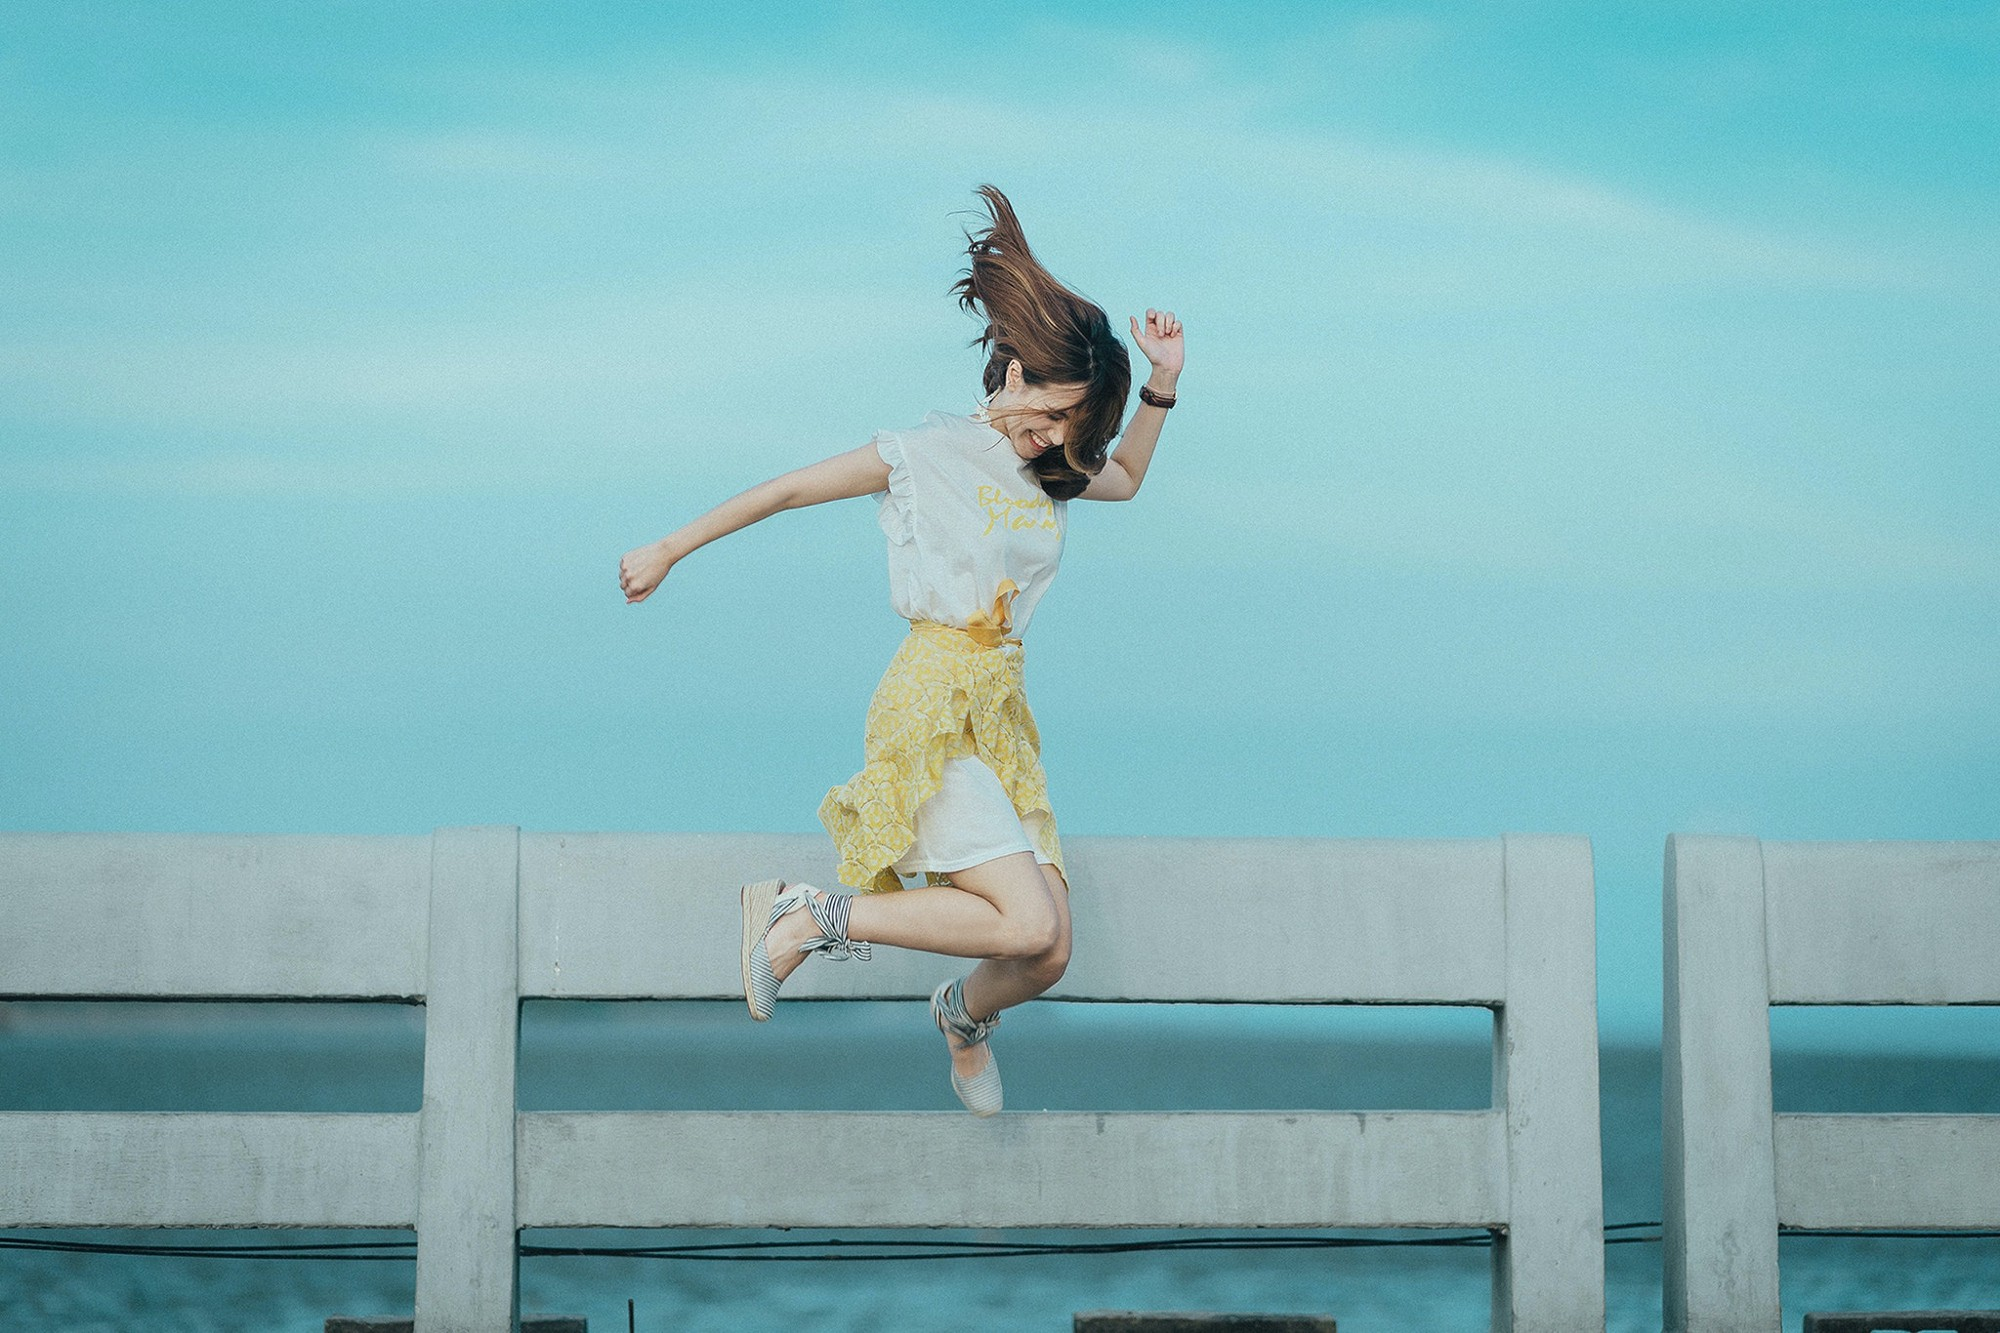 A young woman with a yellow skirt and white t-shirt jumping high against a blue sky and concrete fence.